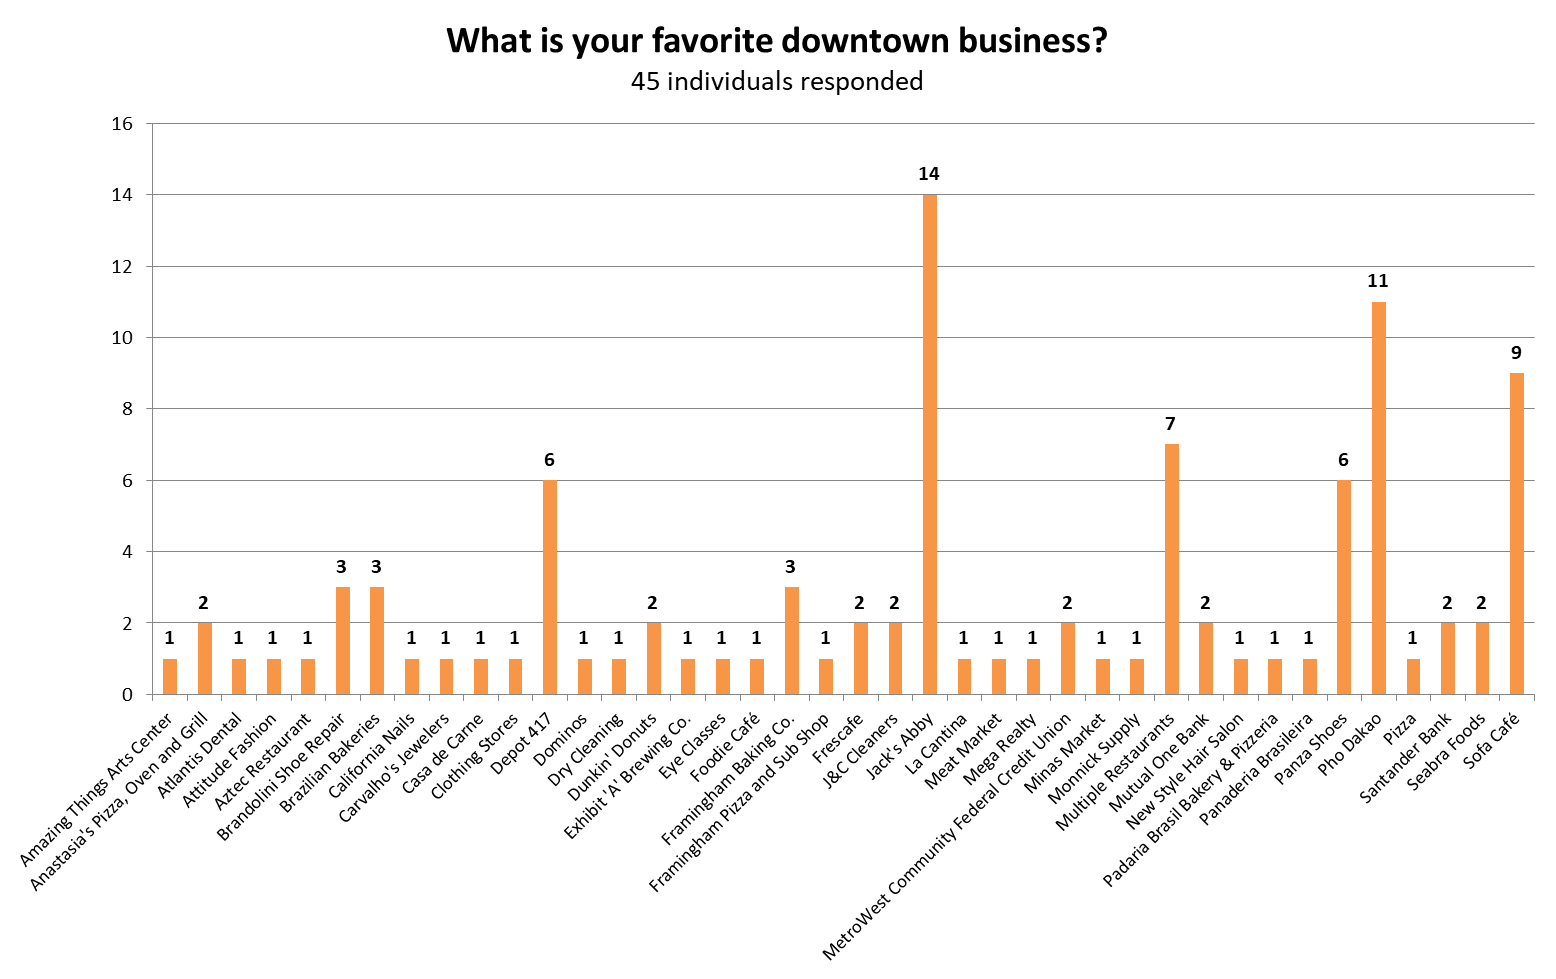 Survey responses from the Lokerville Lookouts collected May 2018 - June 2018